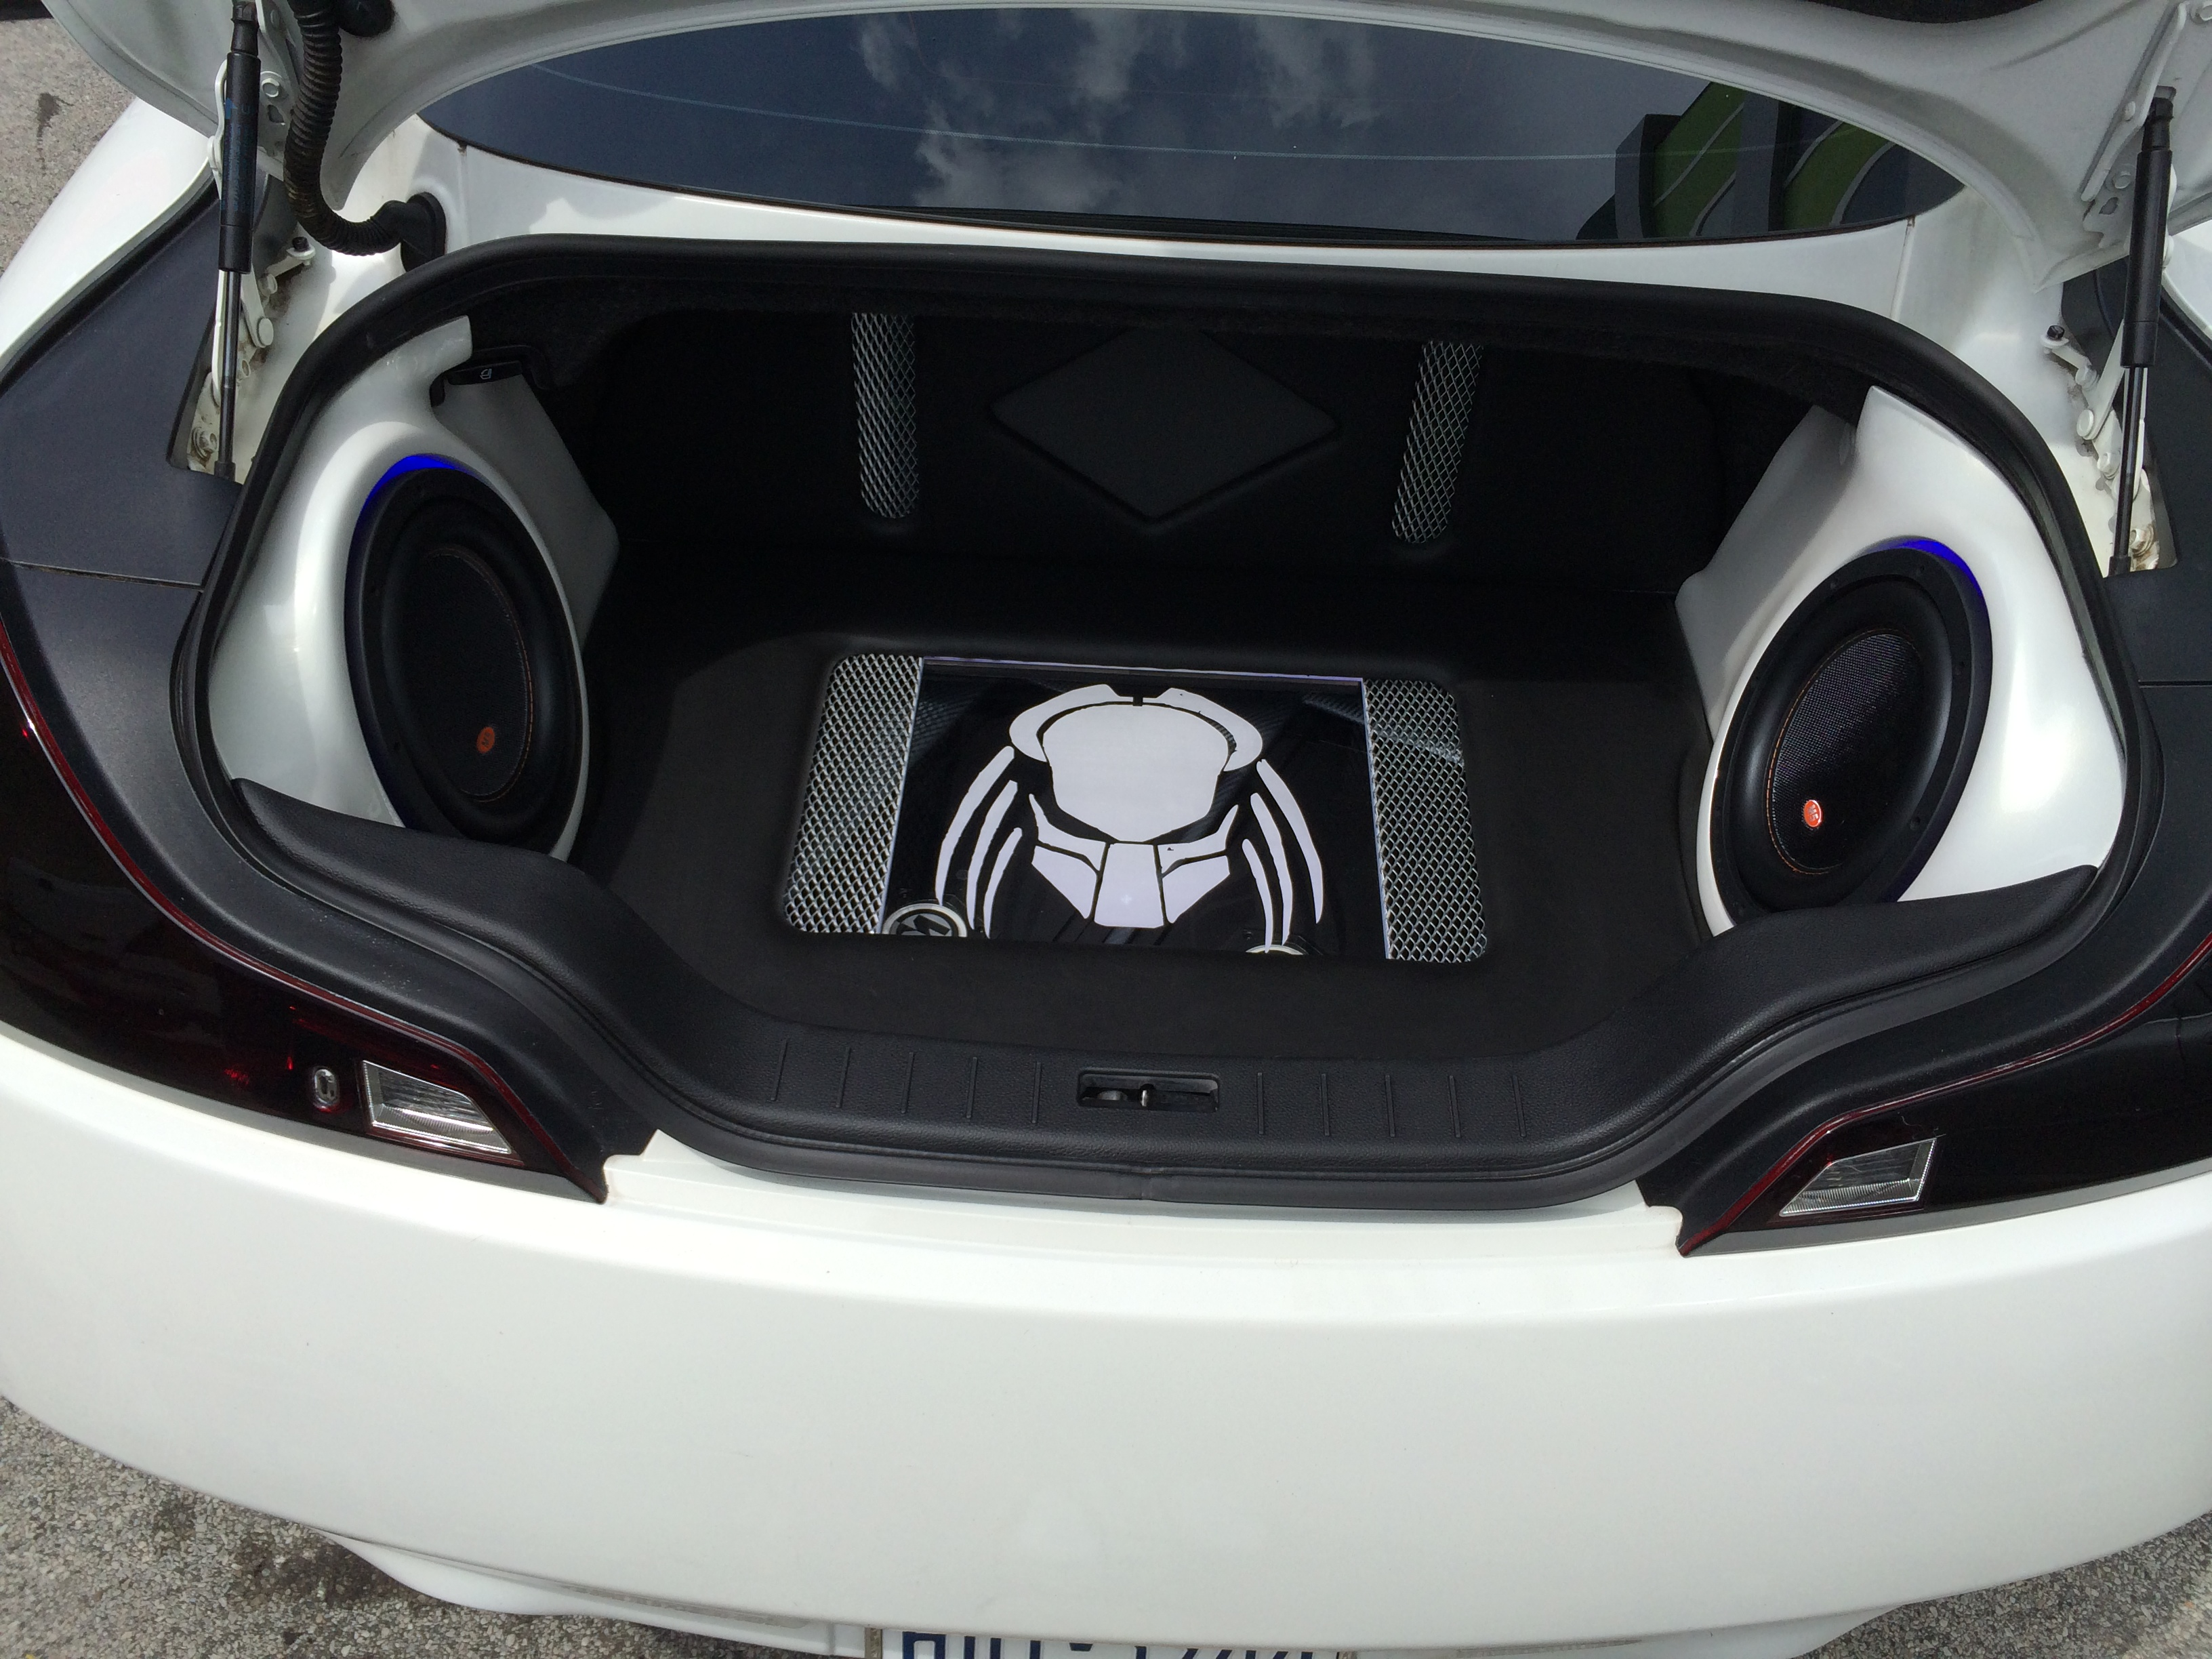 2010 G37 Coupe Customized High End Car Stereos Amp Alarms